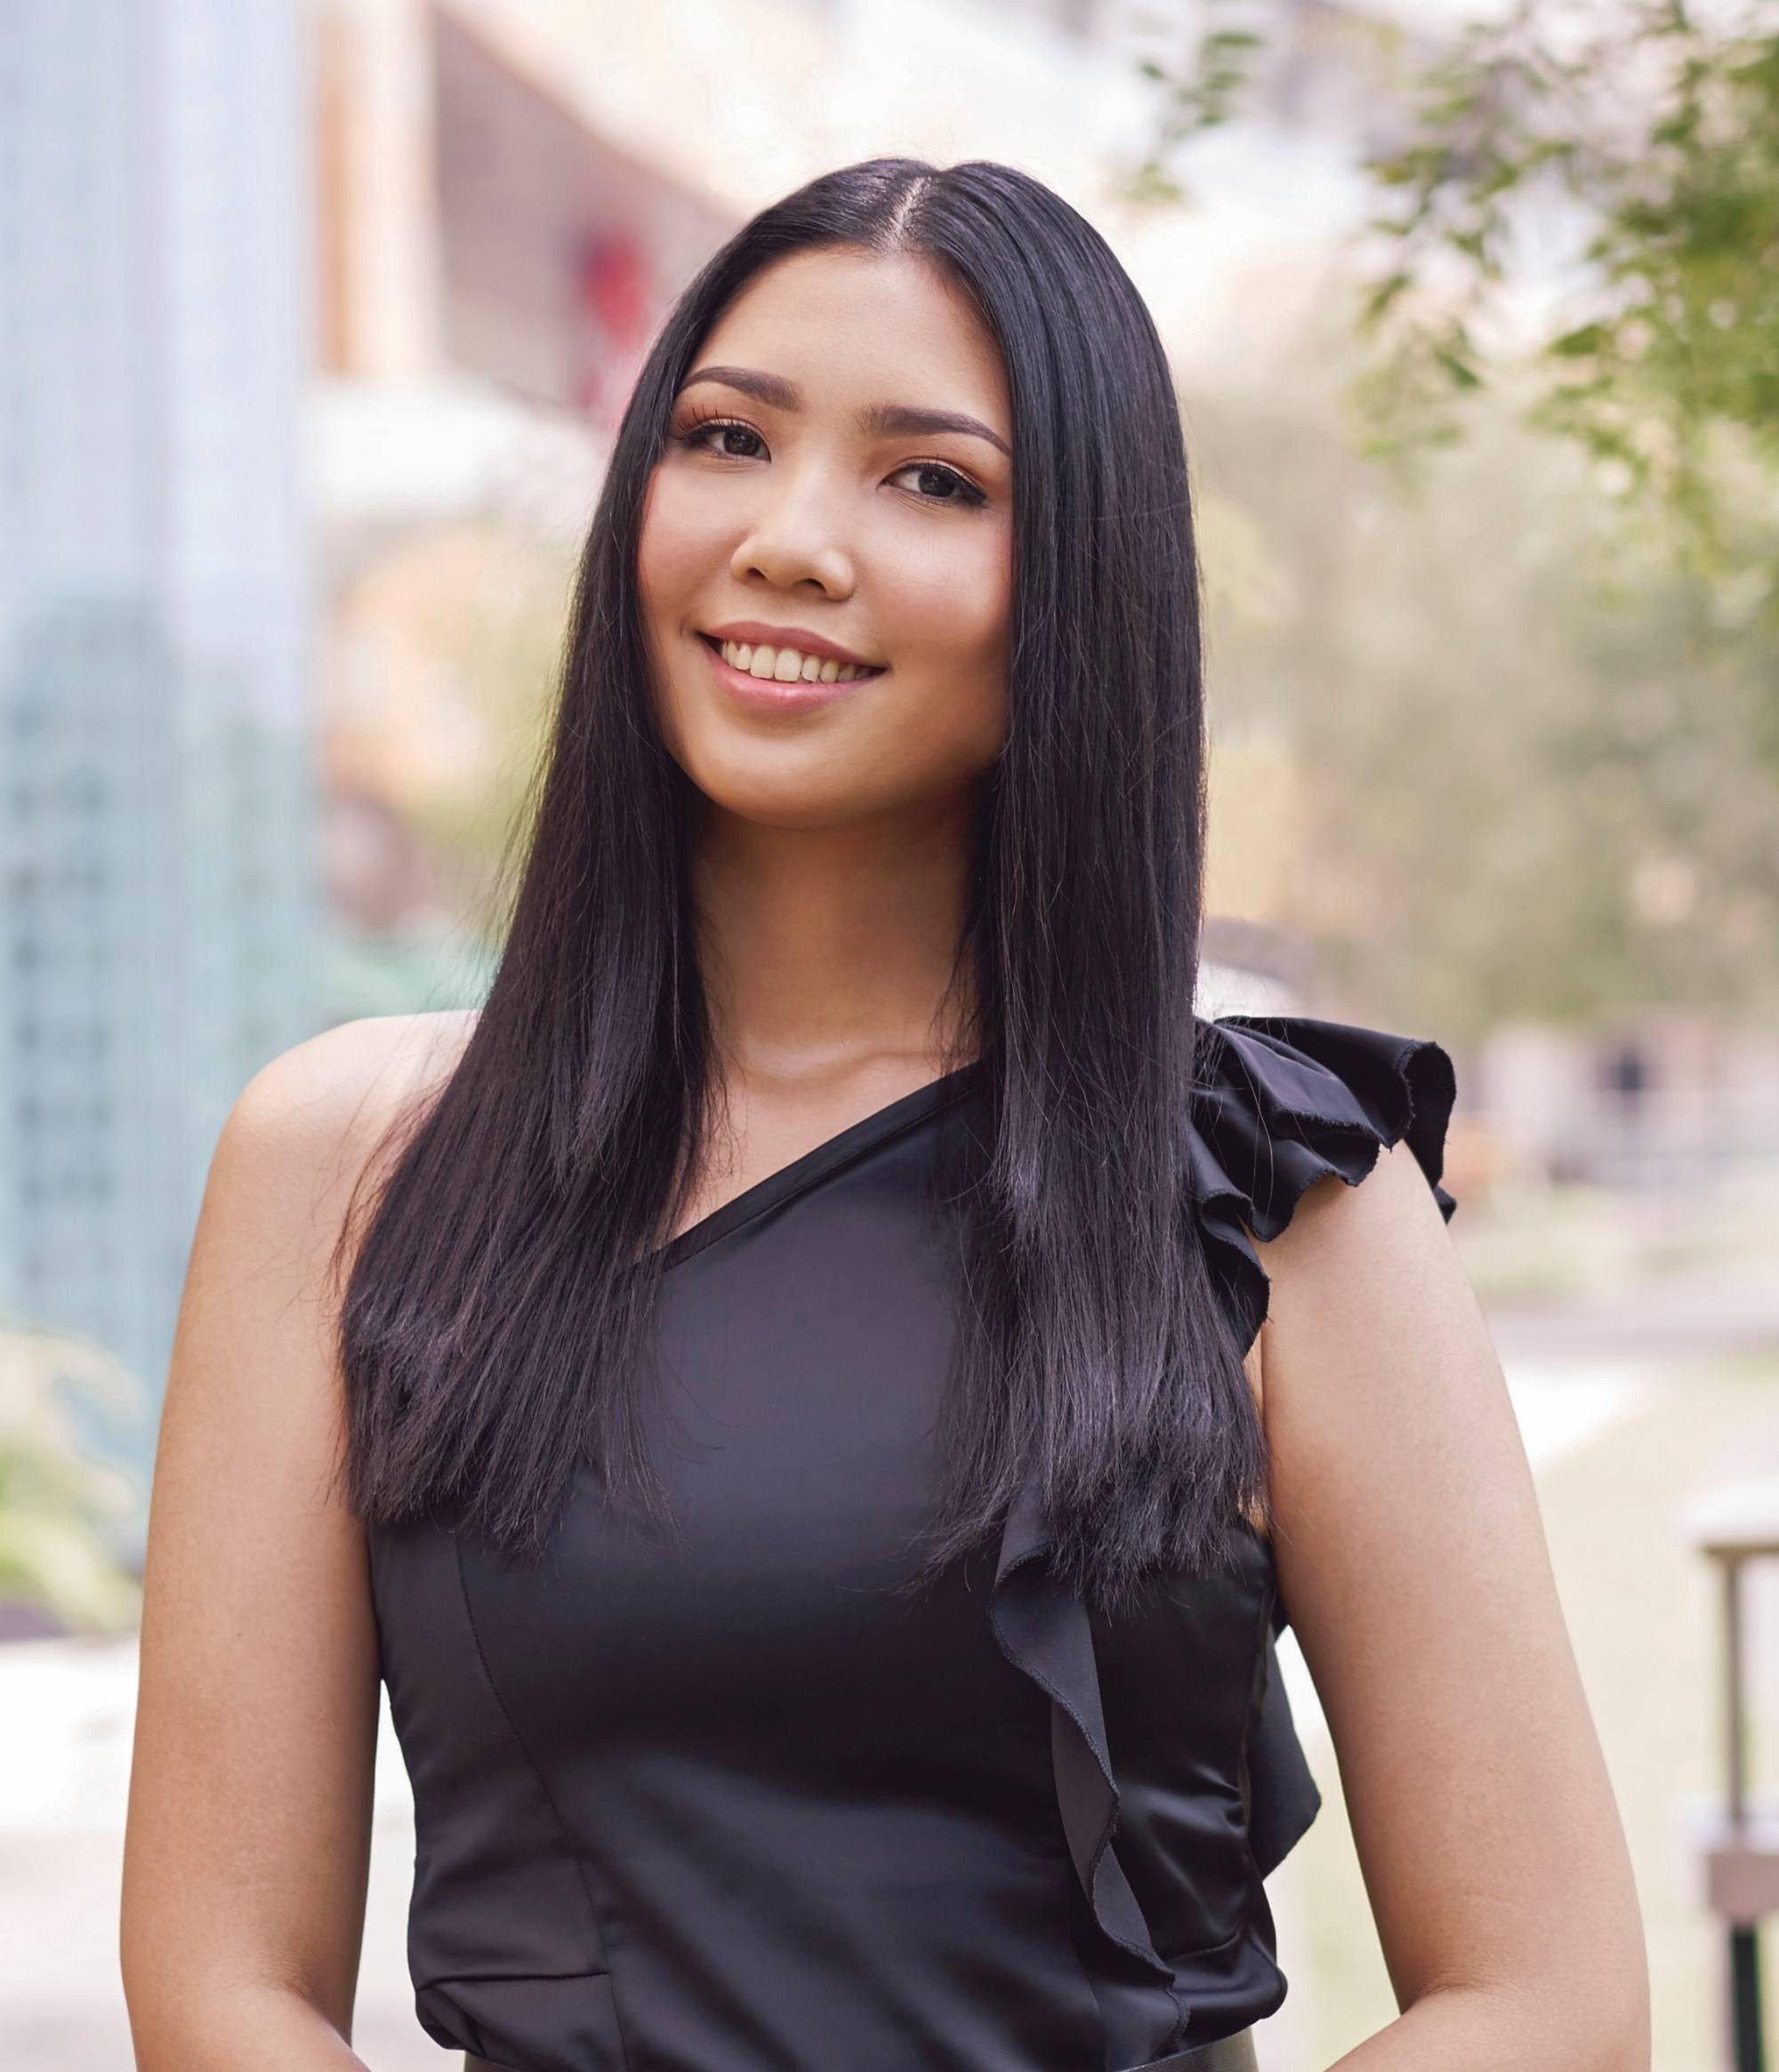 Heat protectant spray: Closeup shot of an Asian woman with long straight black hair wearing a black dress outdoors